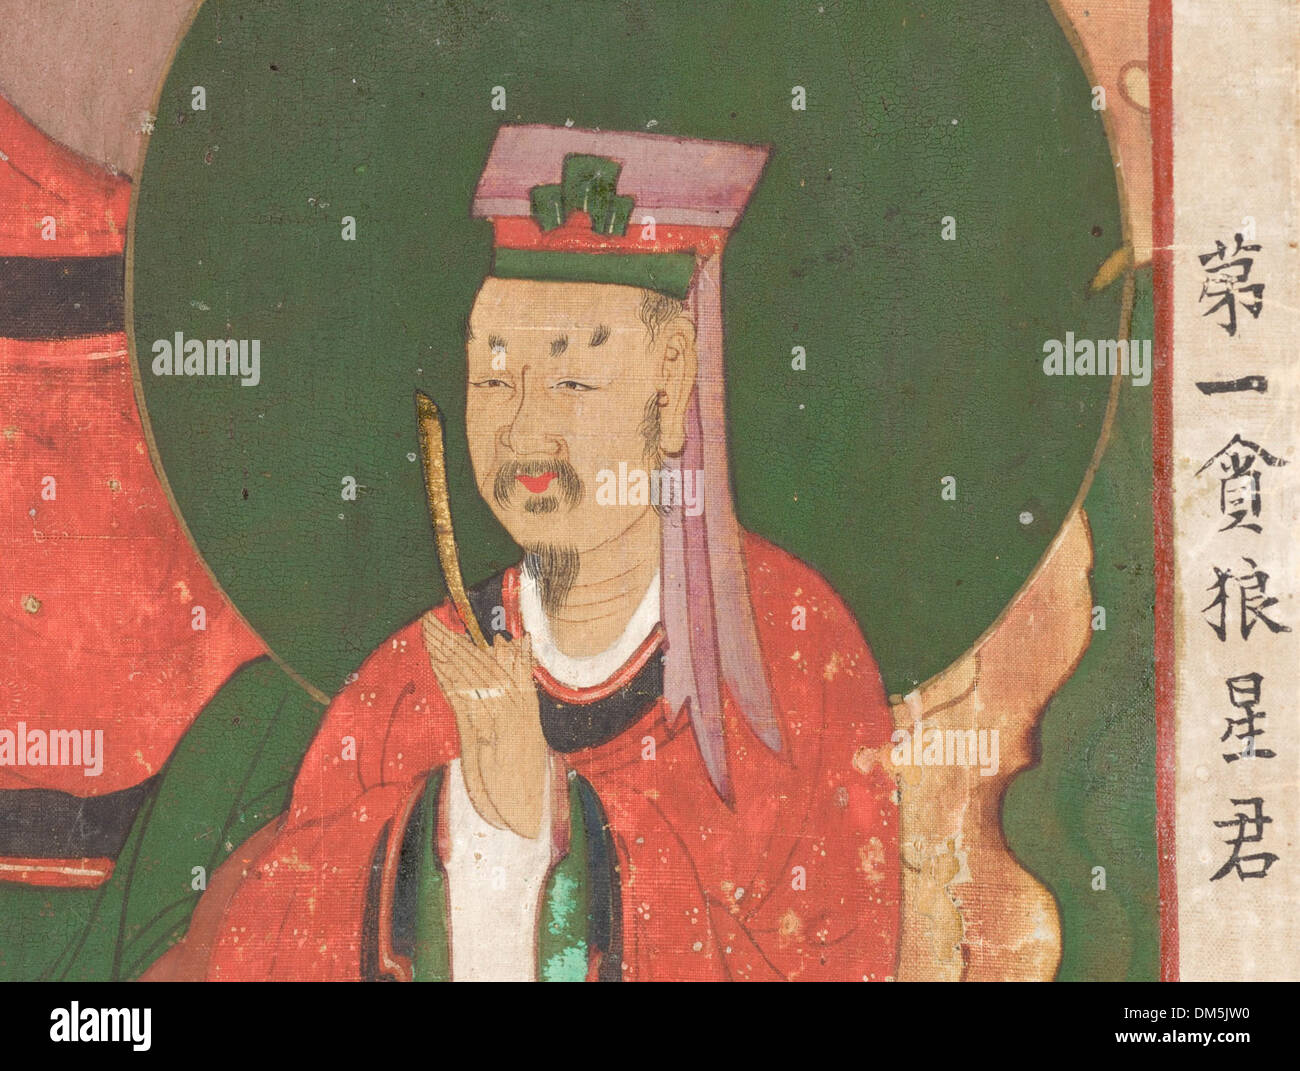 First and Second of the Buddhas of the Seven Stars of the Big Dipper  (Chilseong Yeorae)- Uneui Tongjeung Yeorae with Tamlang Seongun  2000.15.1-.2 (2 of 7)